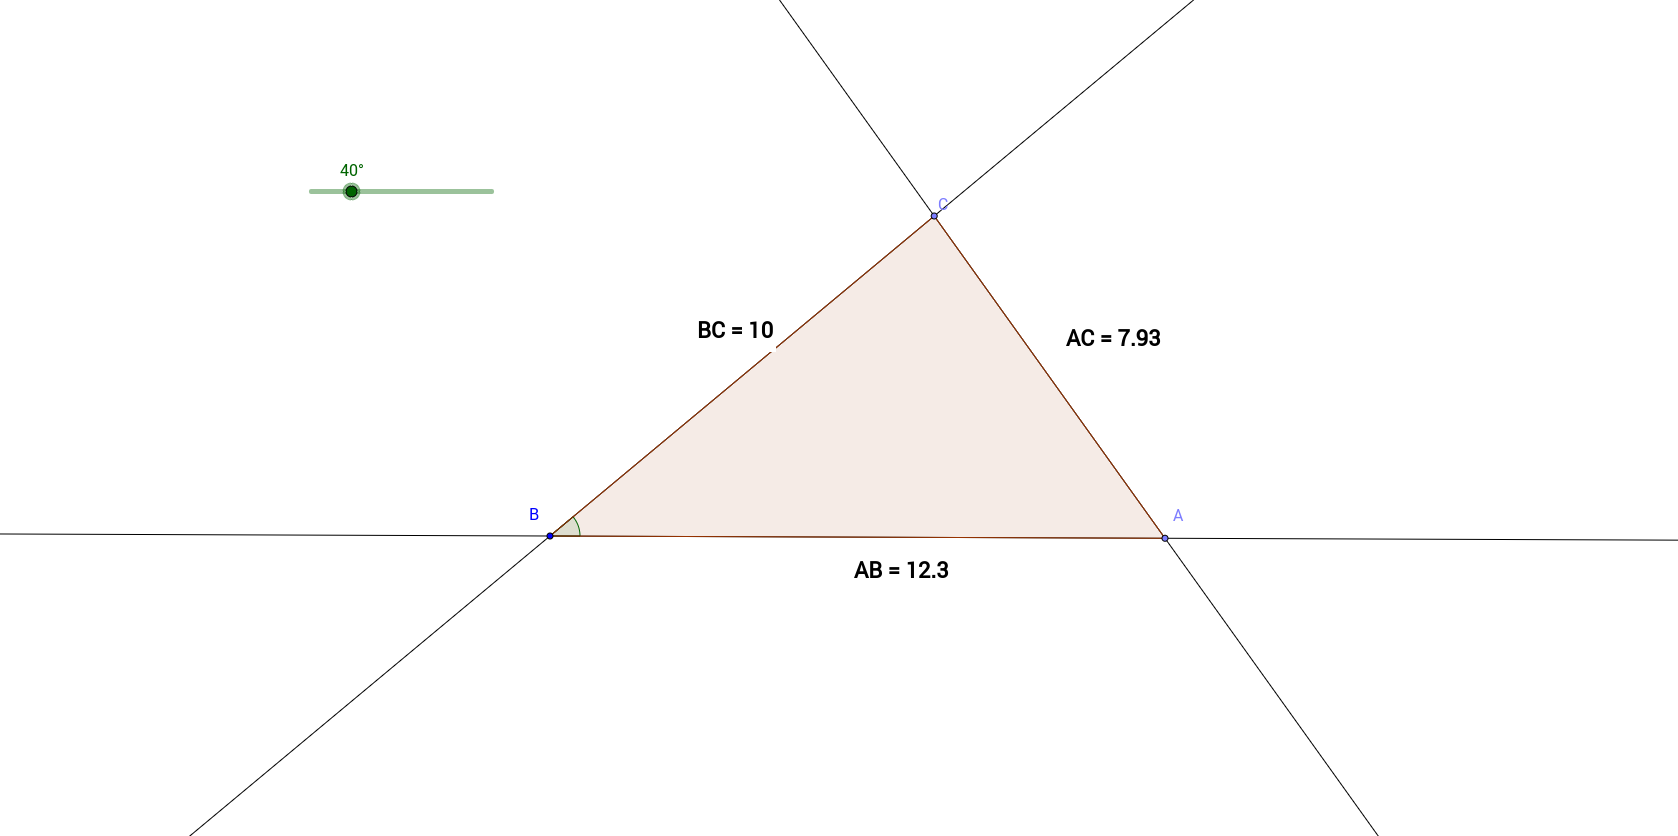 Possible length of the third side of a triangle